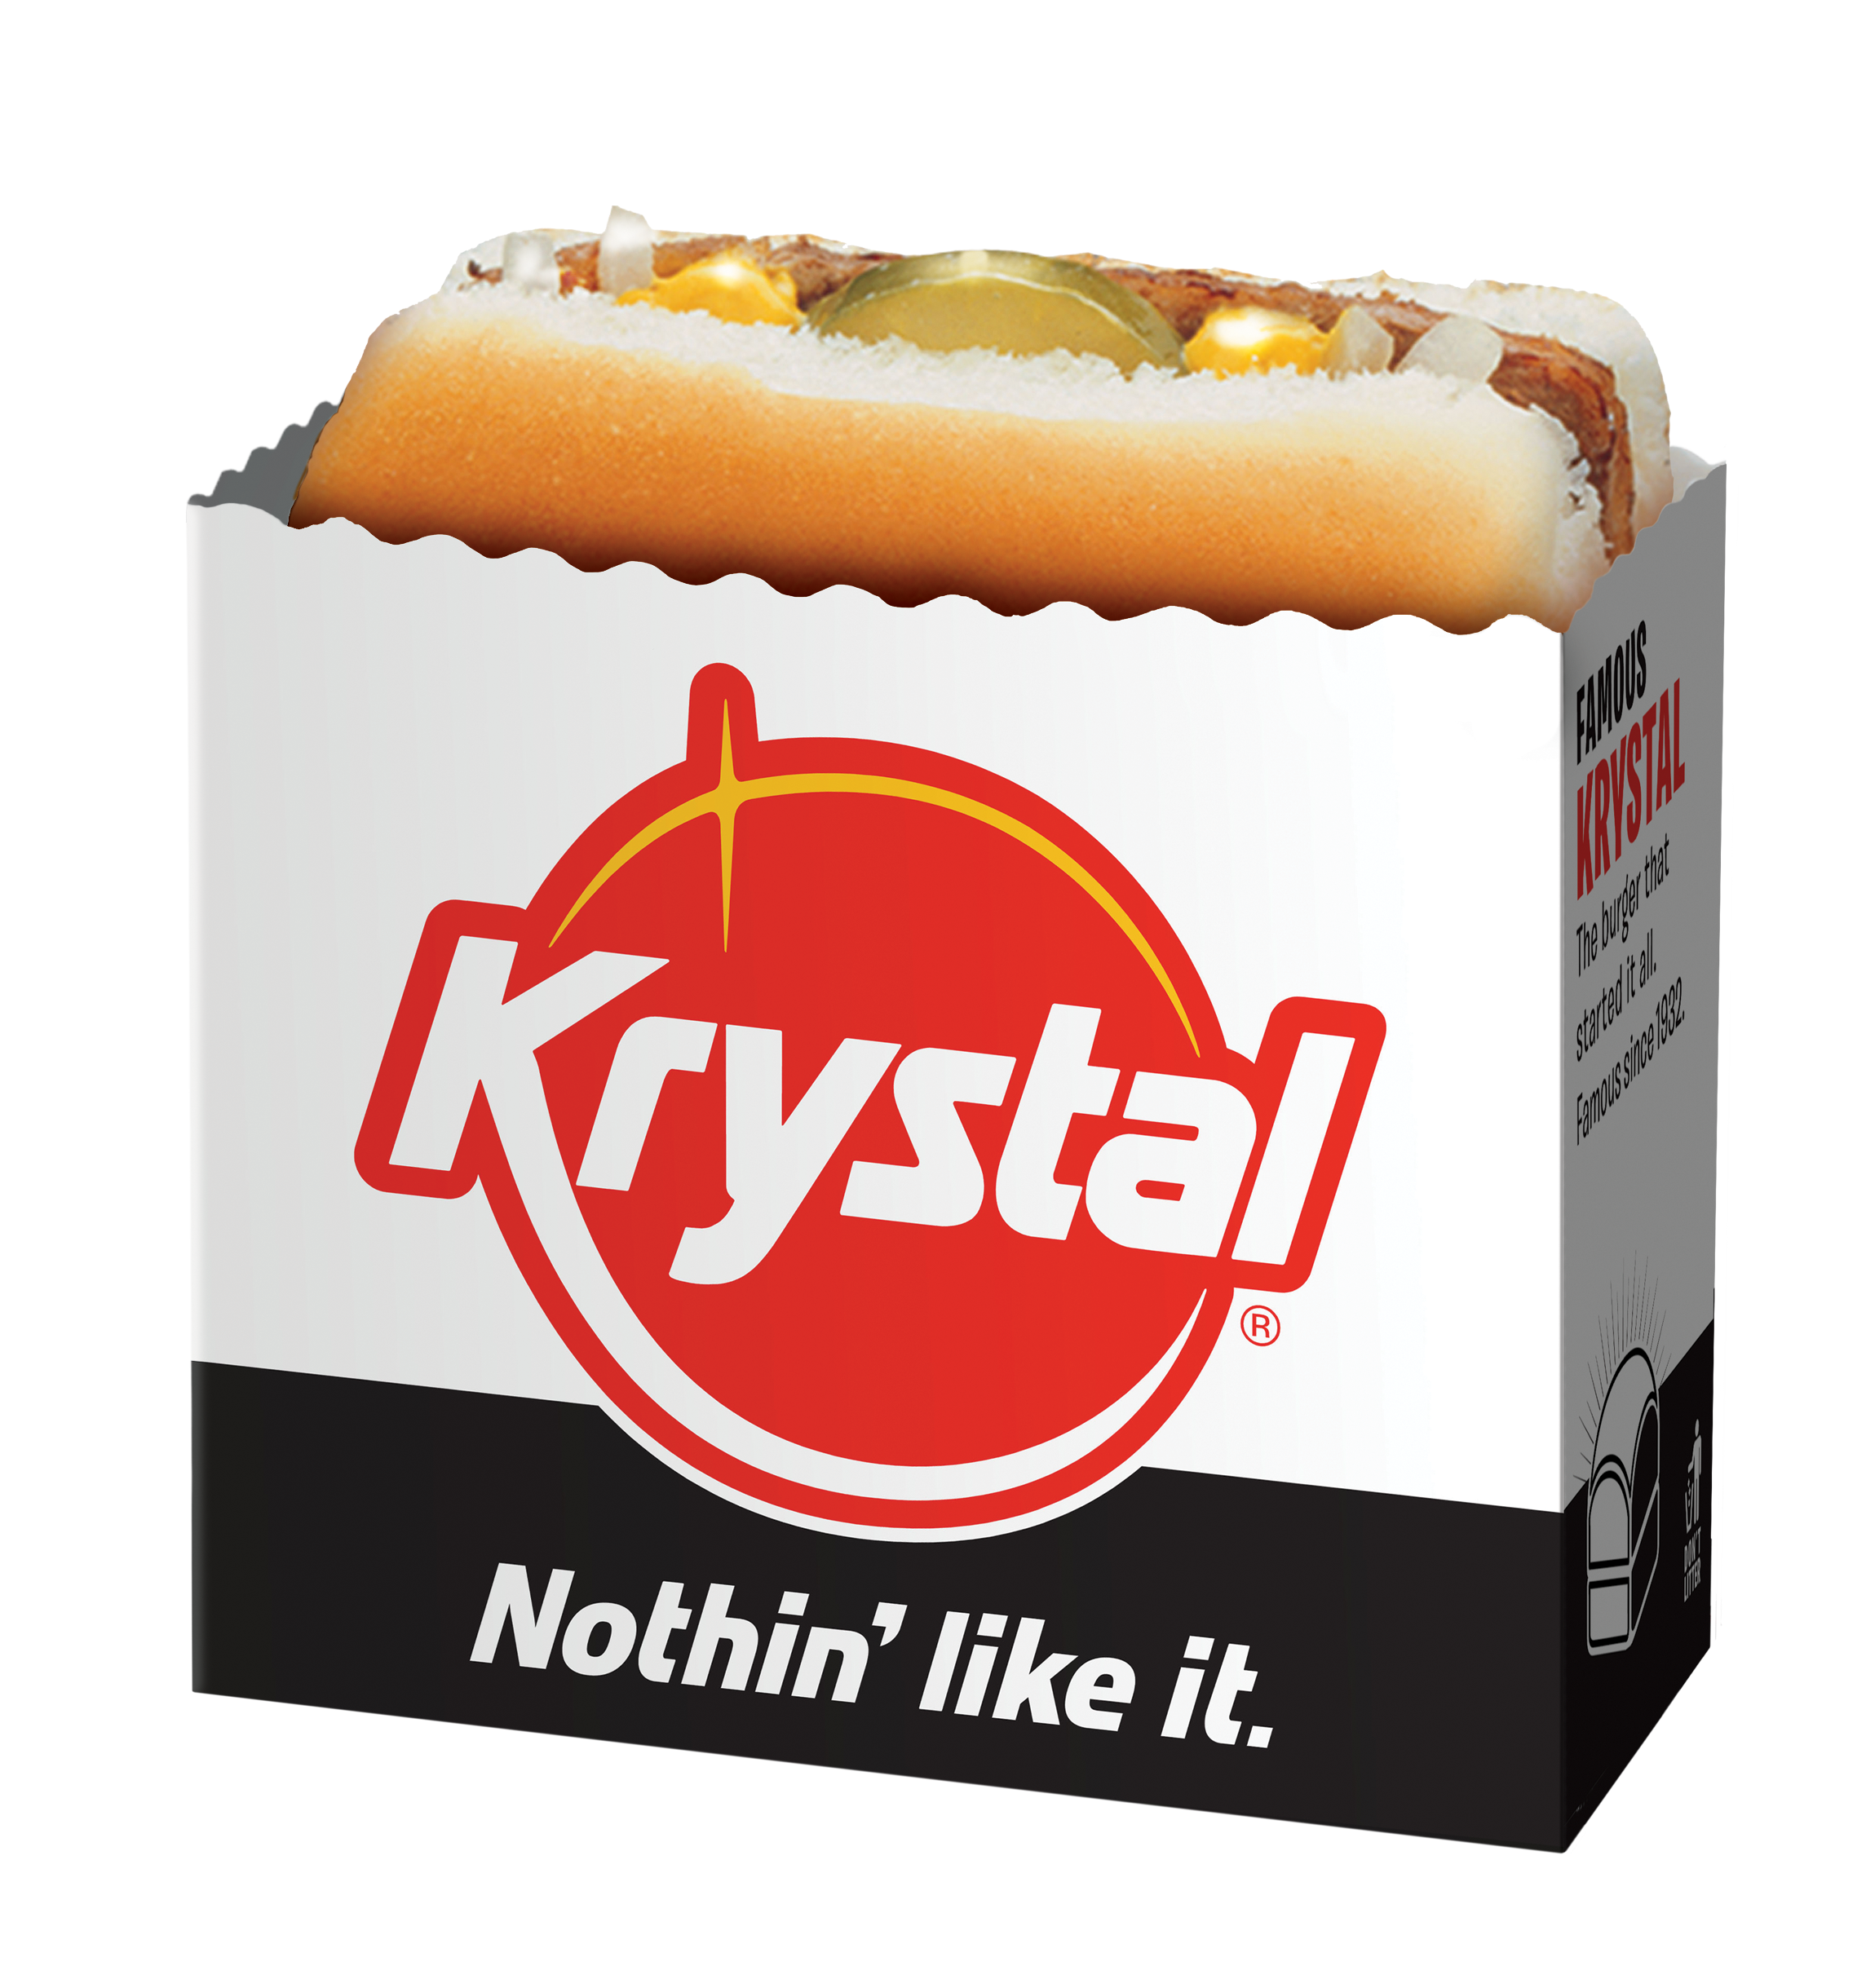 Image result for krystals transparent